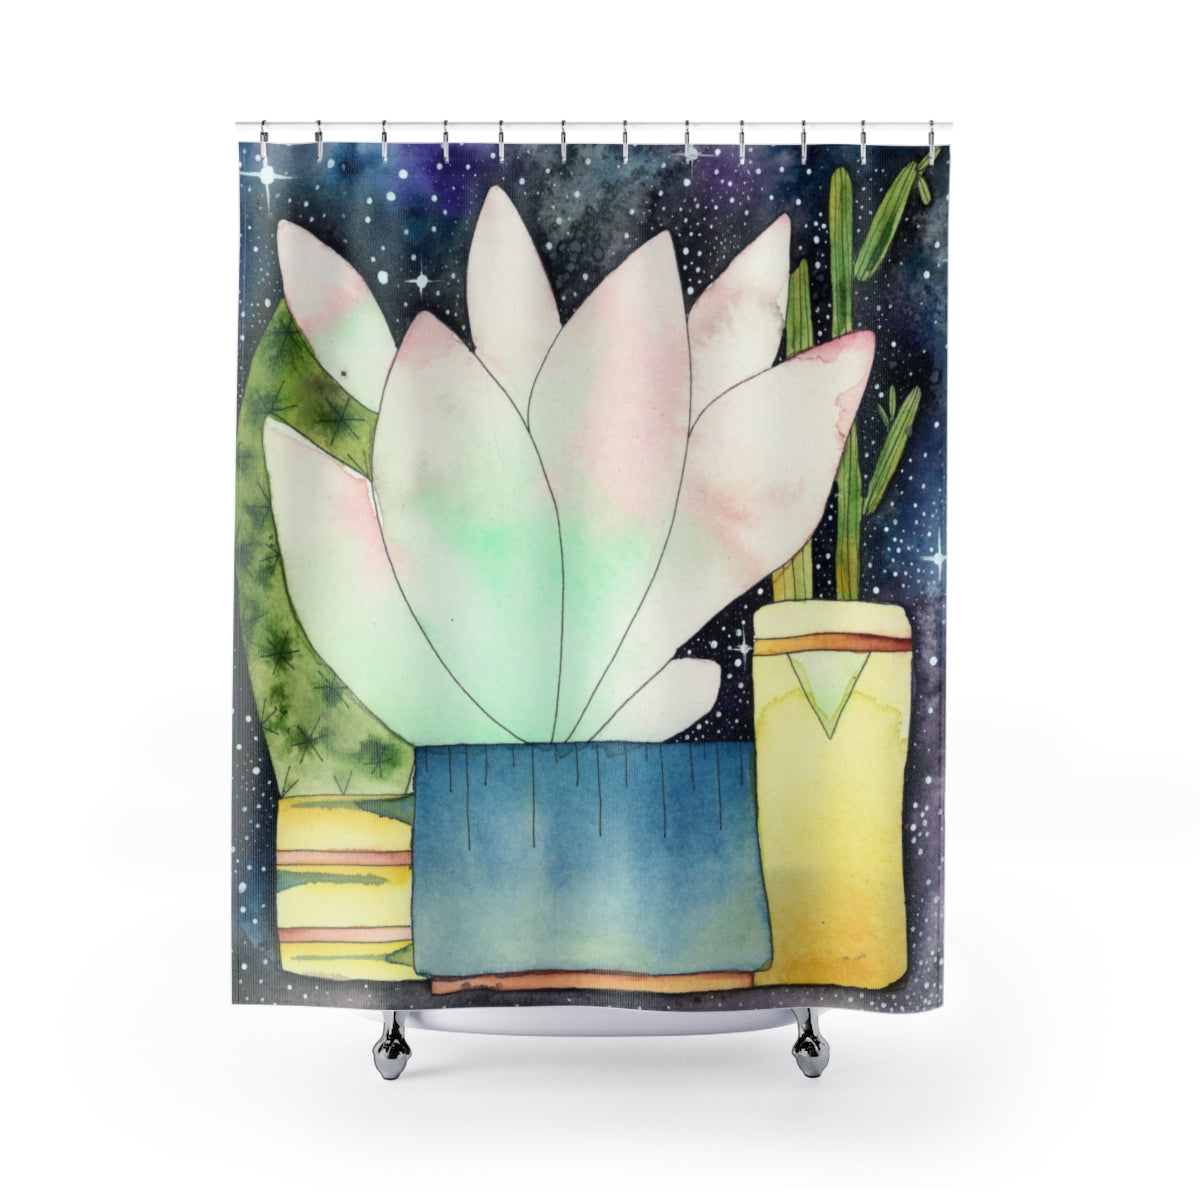 Pink Succulent Watercolour Shower Curtain, Home Decor - Gravitational Pull Art